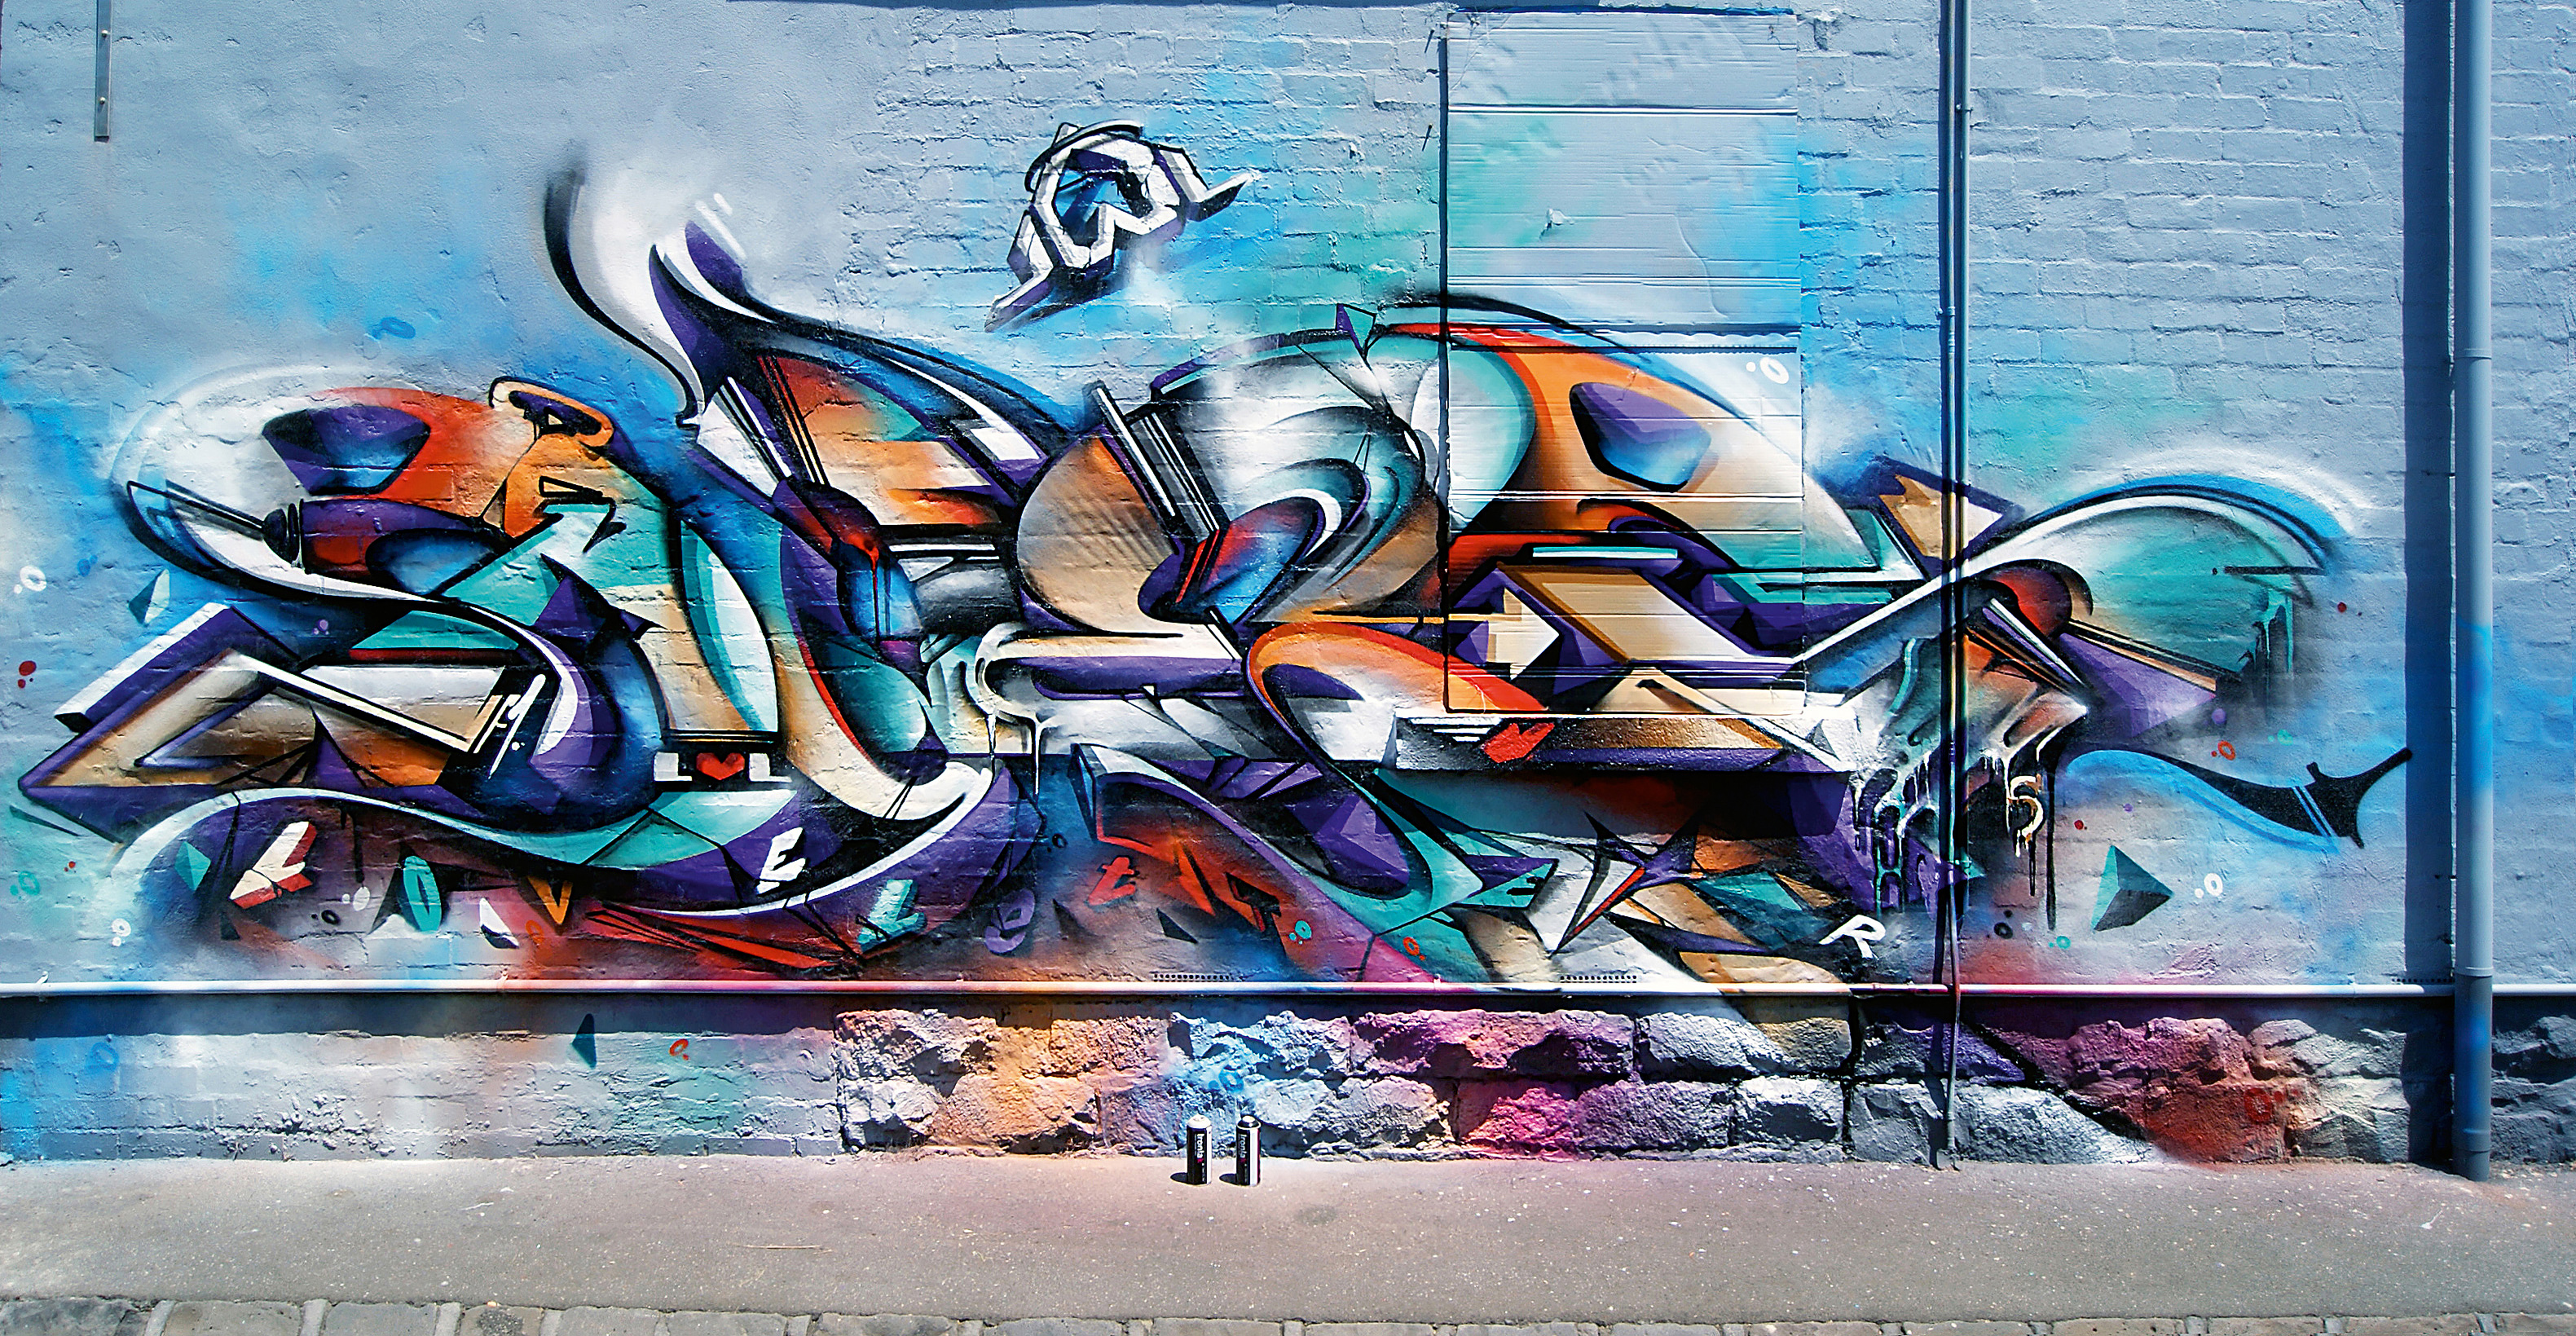 A work by Does - Melbourne australia mural